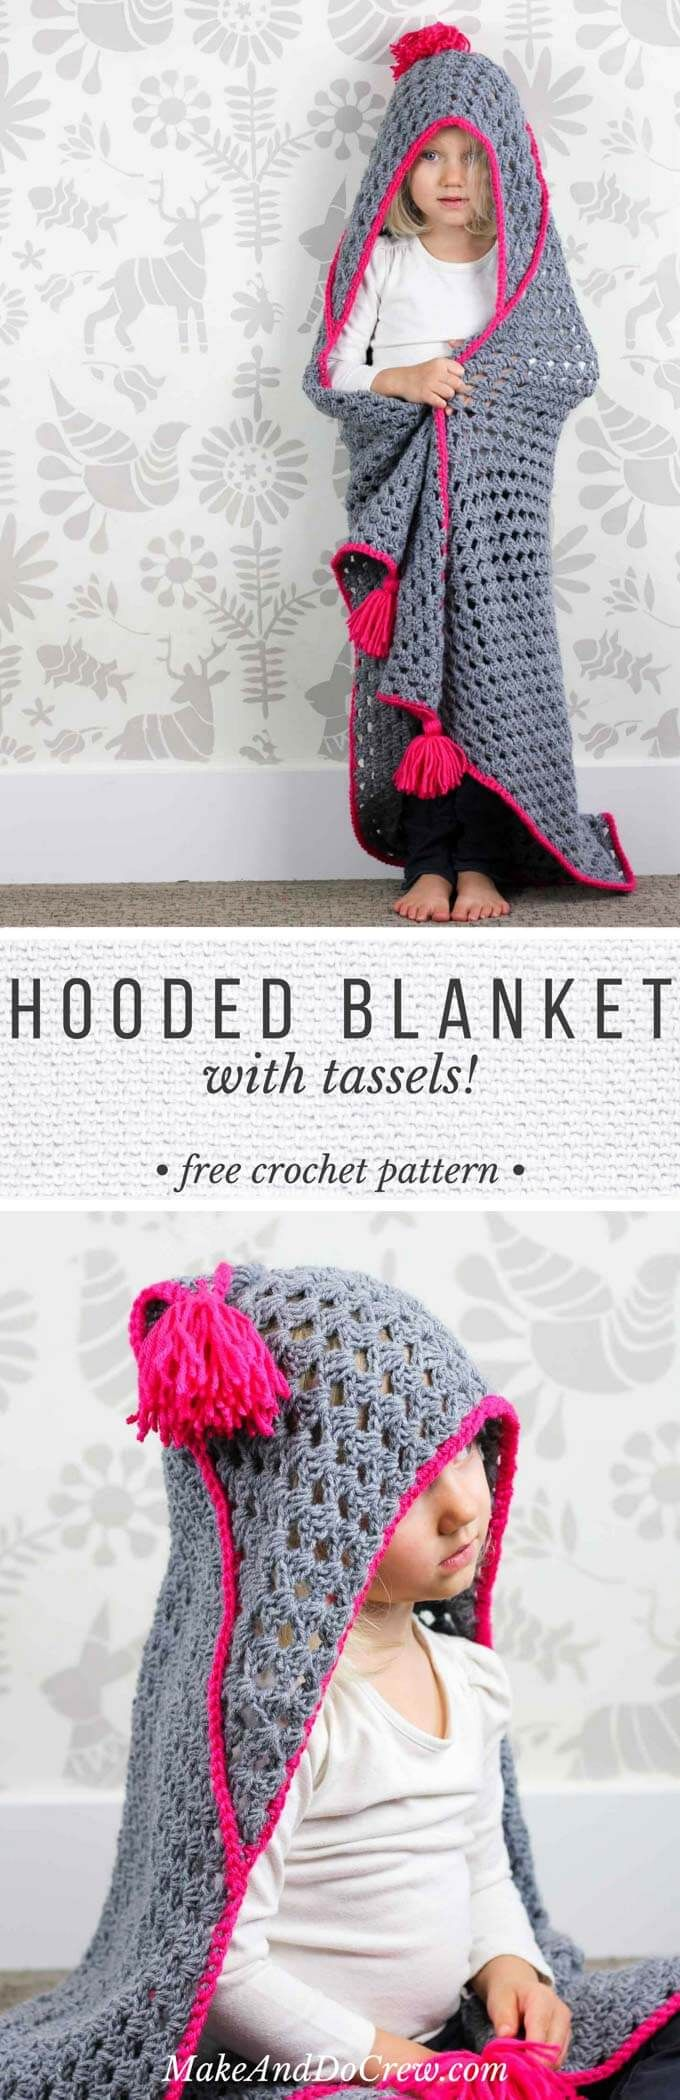 """Based on a large granny square, this free crochet hooded baby blanket pattern makes an easy and inexpensive baby shower gift or crochet charity project. Pattern includes newborn - 6 months size and 6 months - child size.     Made with Lion Brand Pound of Love yarn in """"Oxford Grey"""" and Vanna's Choice in """"Rose Shocking."""" #yarnheroes"""